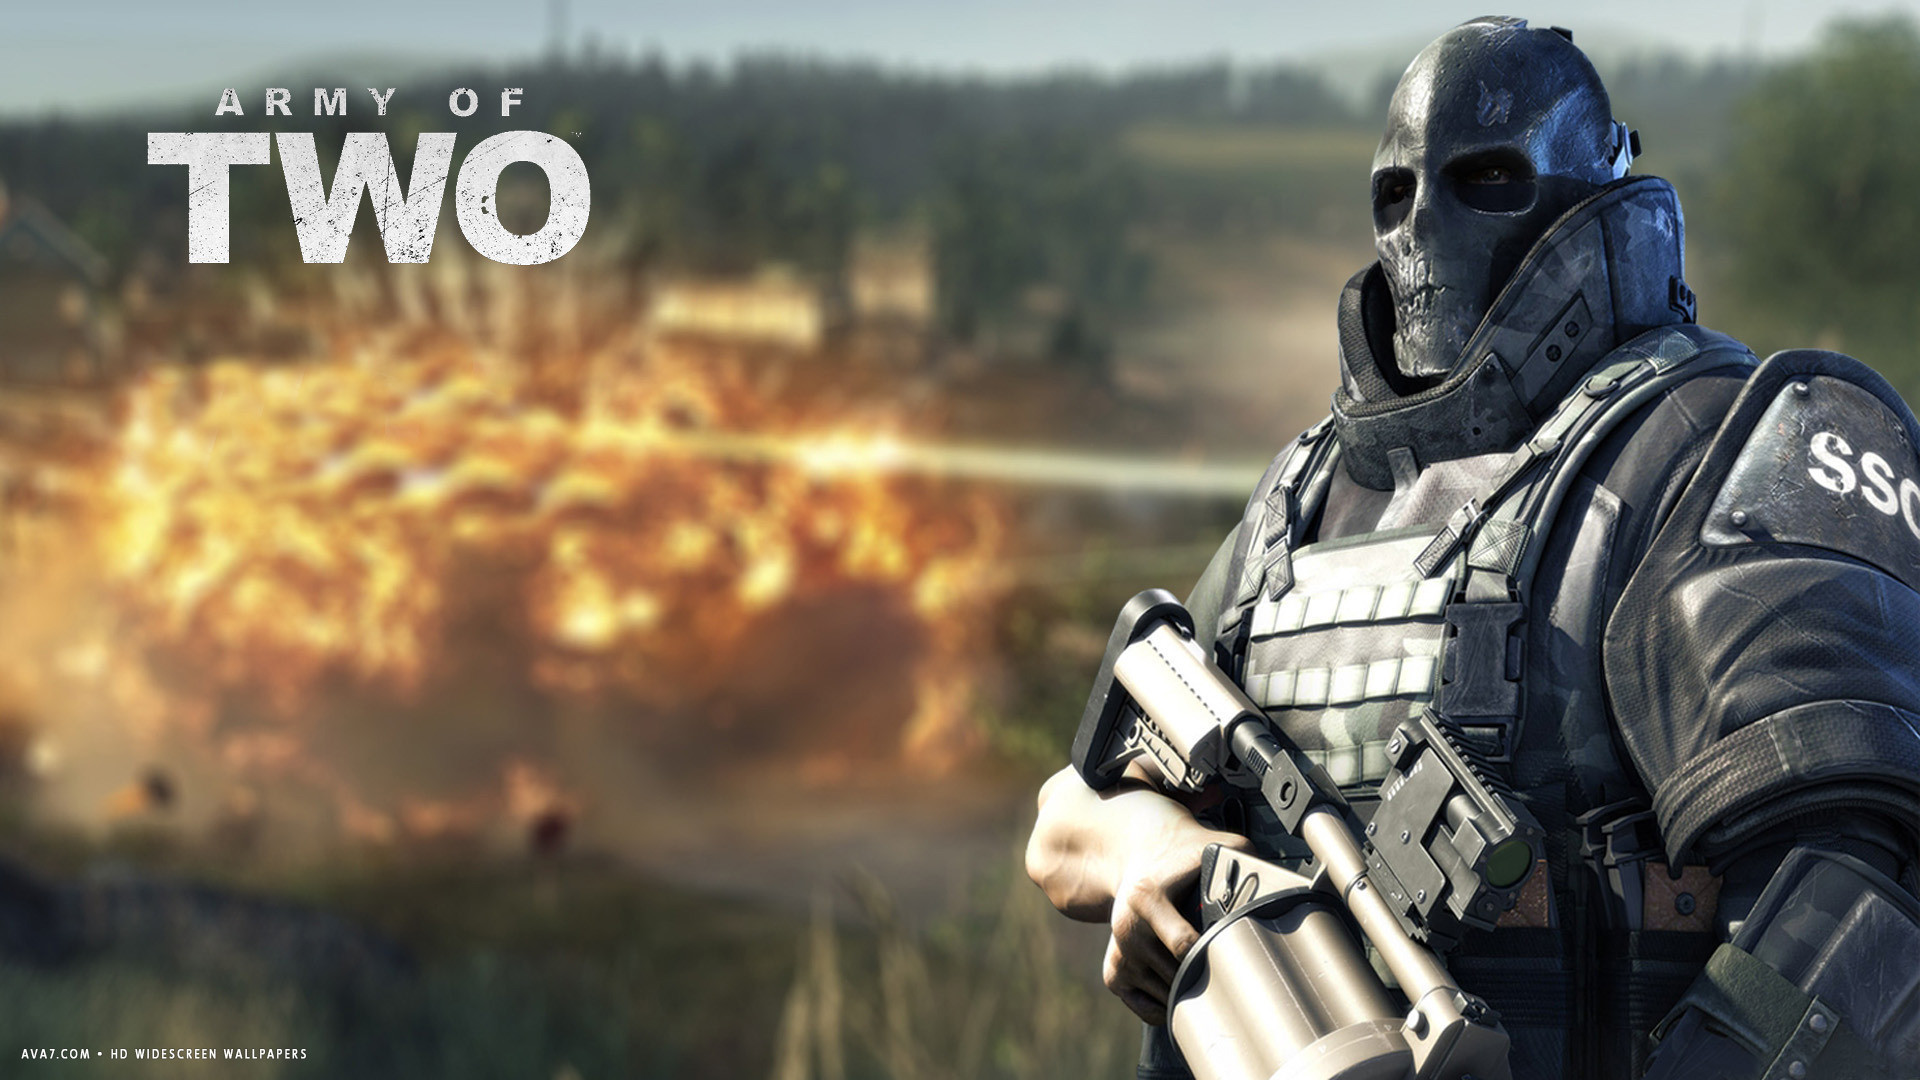 army of two game rios ballistic face mask soldier hd widescreen